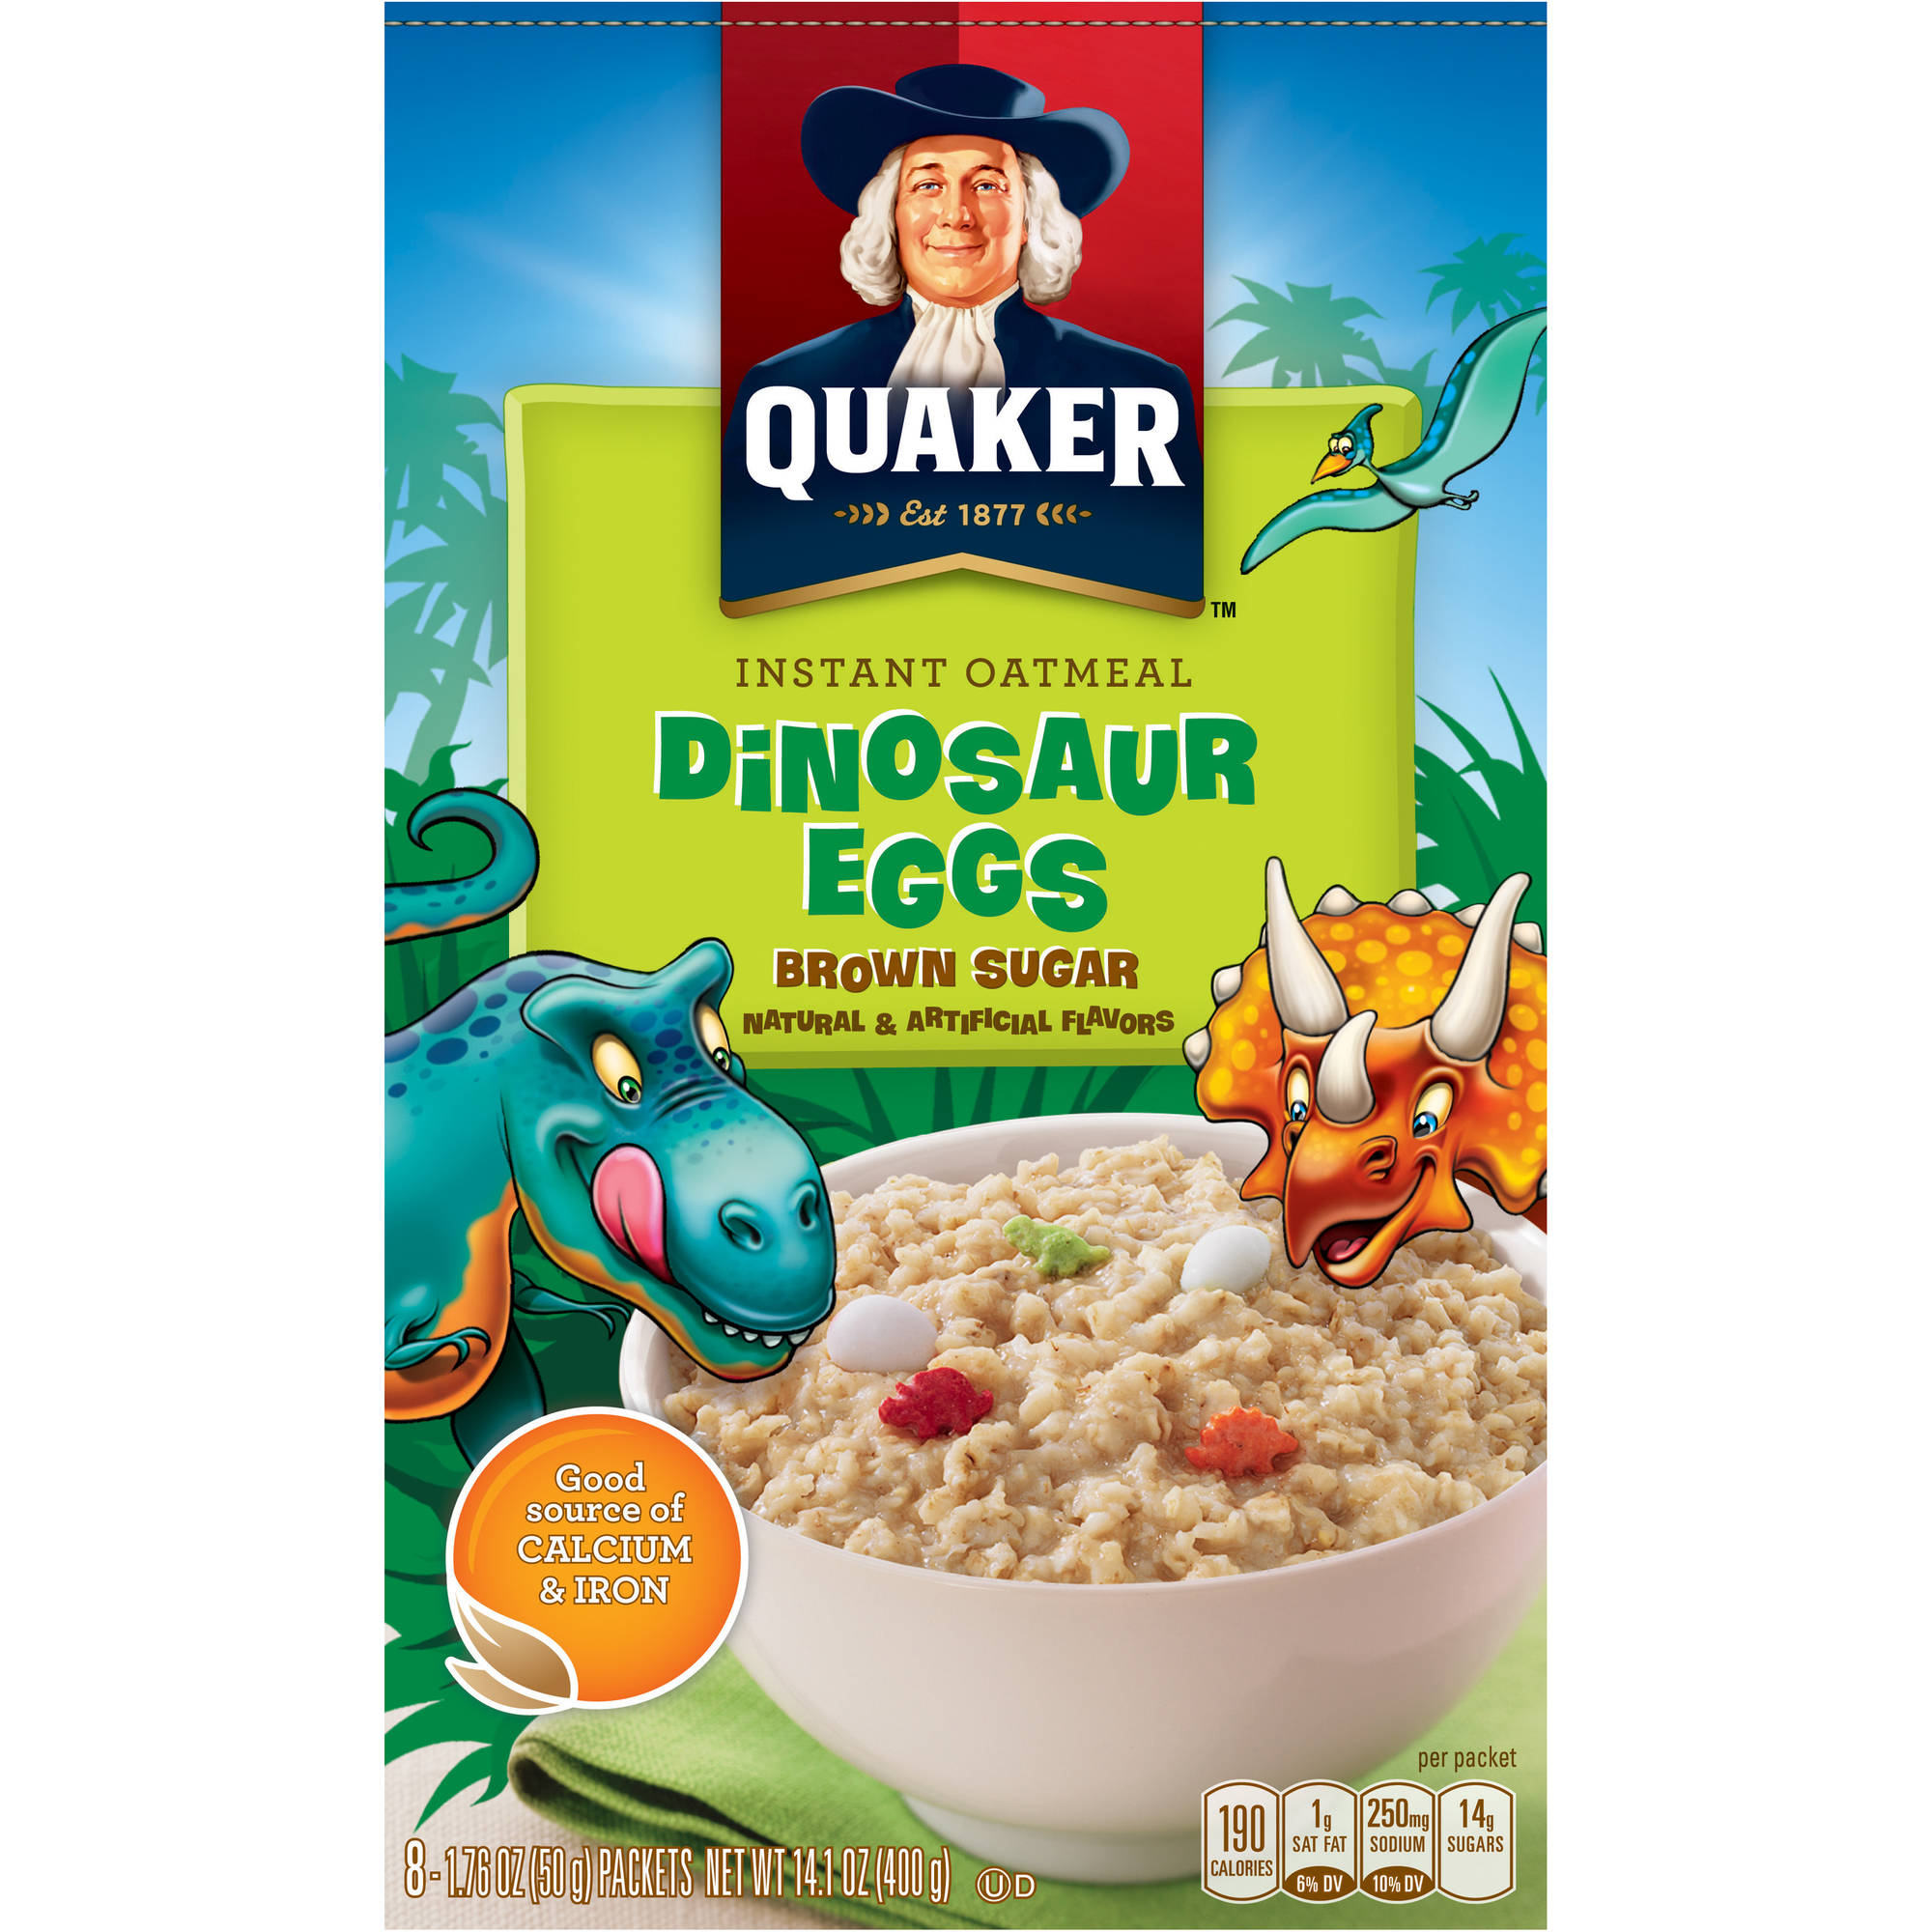 Quaker Dinosaur Eggs Brown Sugar Instant Oatmeal, 1.76 oz, 8 count